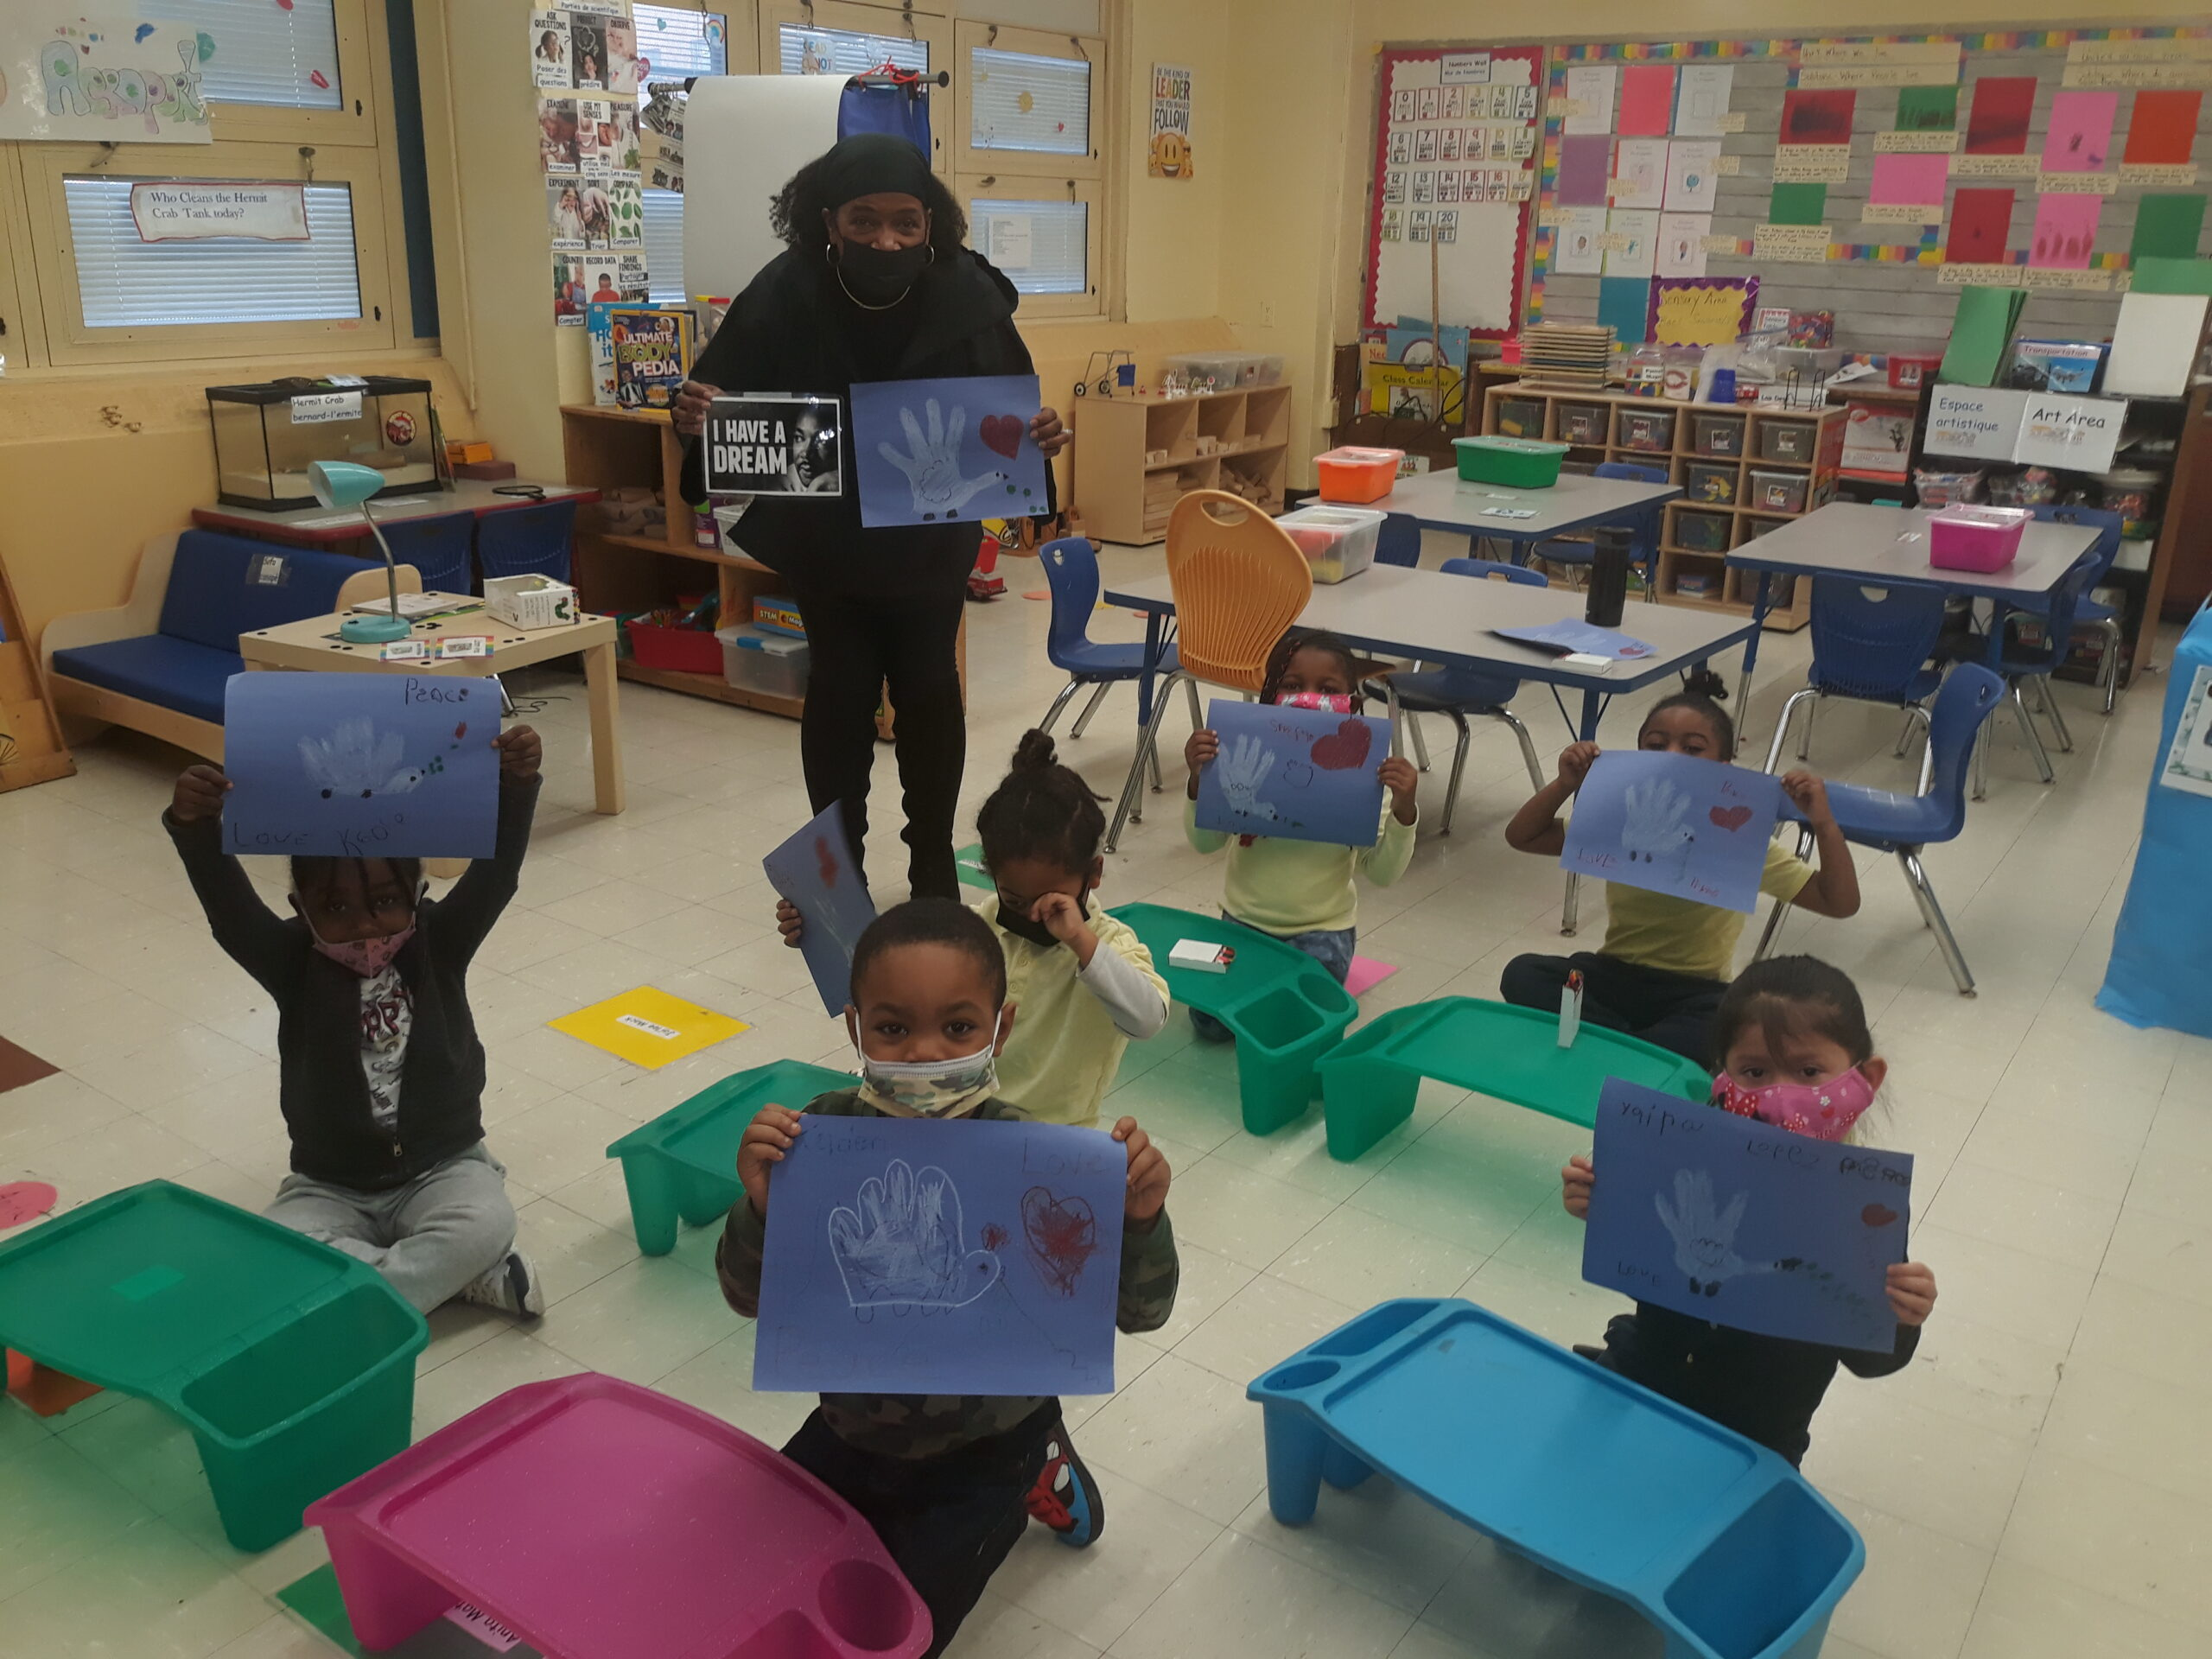 A photo of Ms. White and Kindergarten students honoring the legacy of Dr. Martin Luther King Jr.